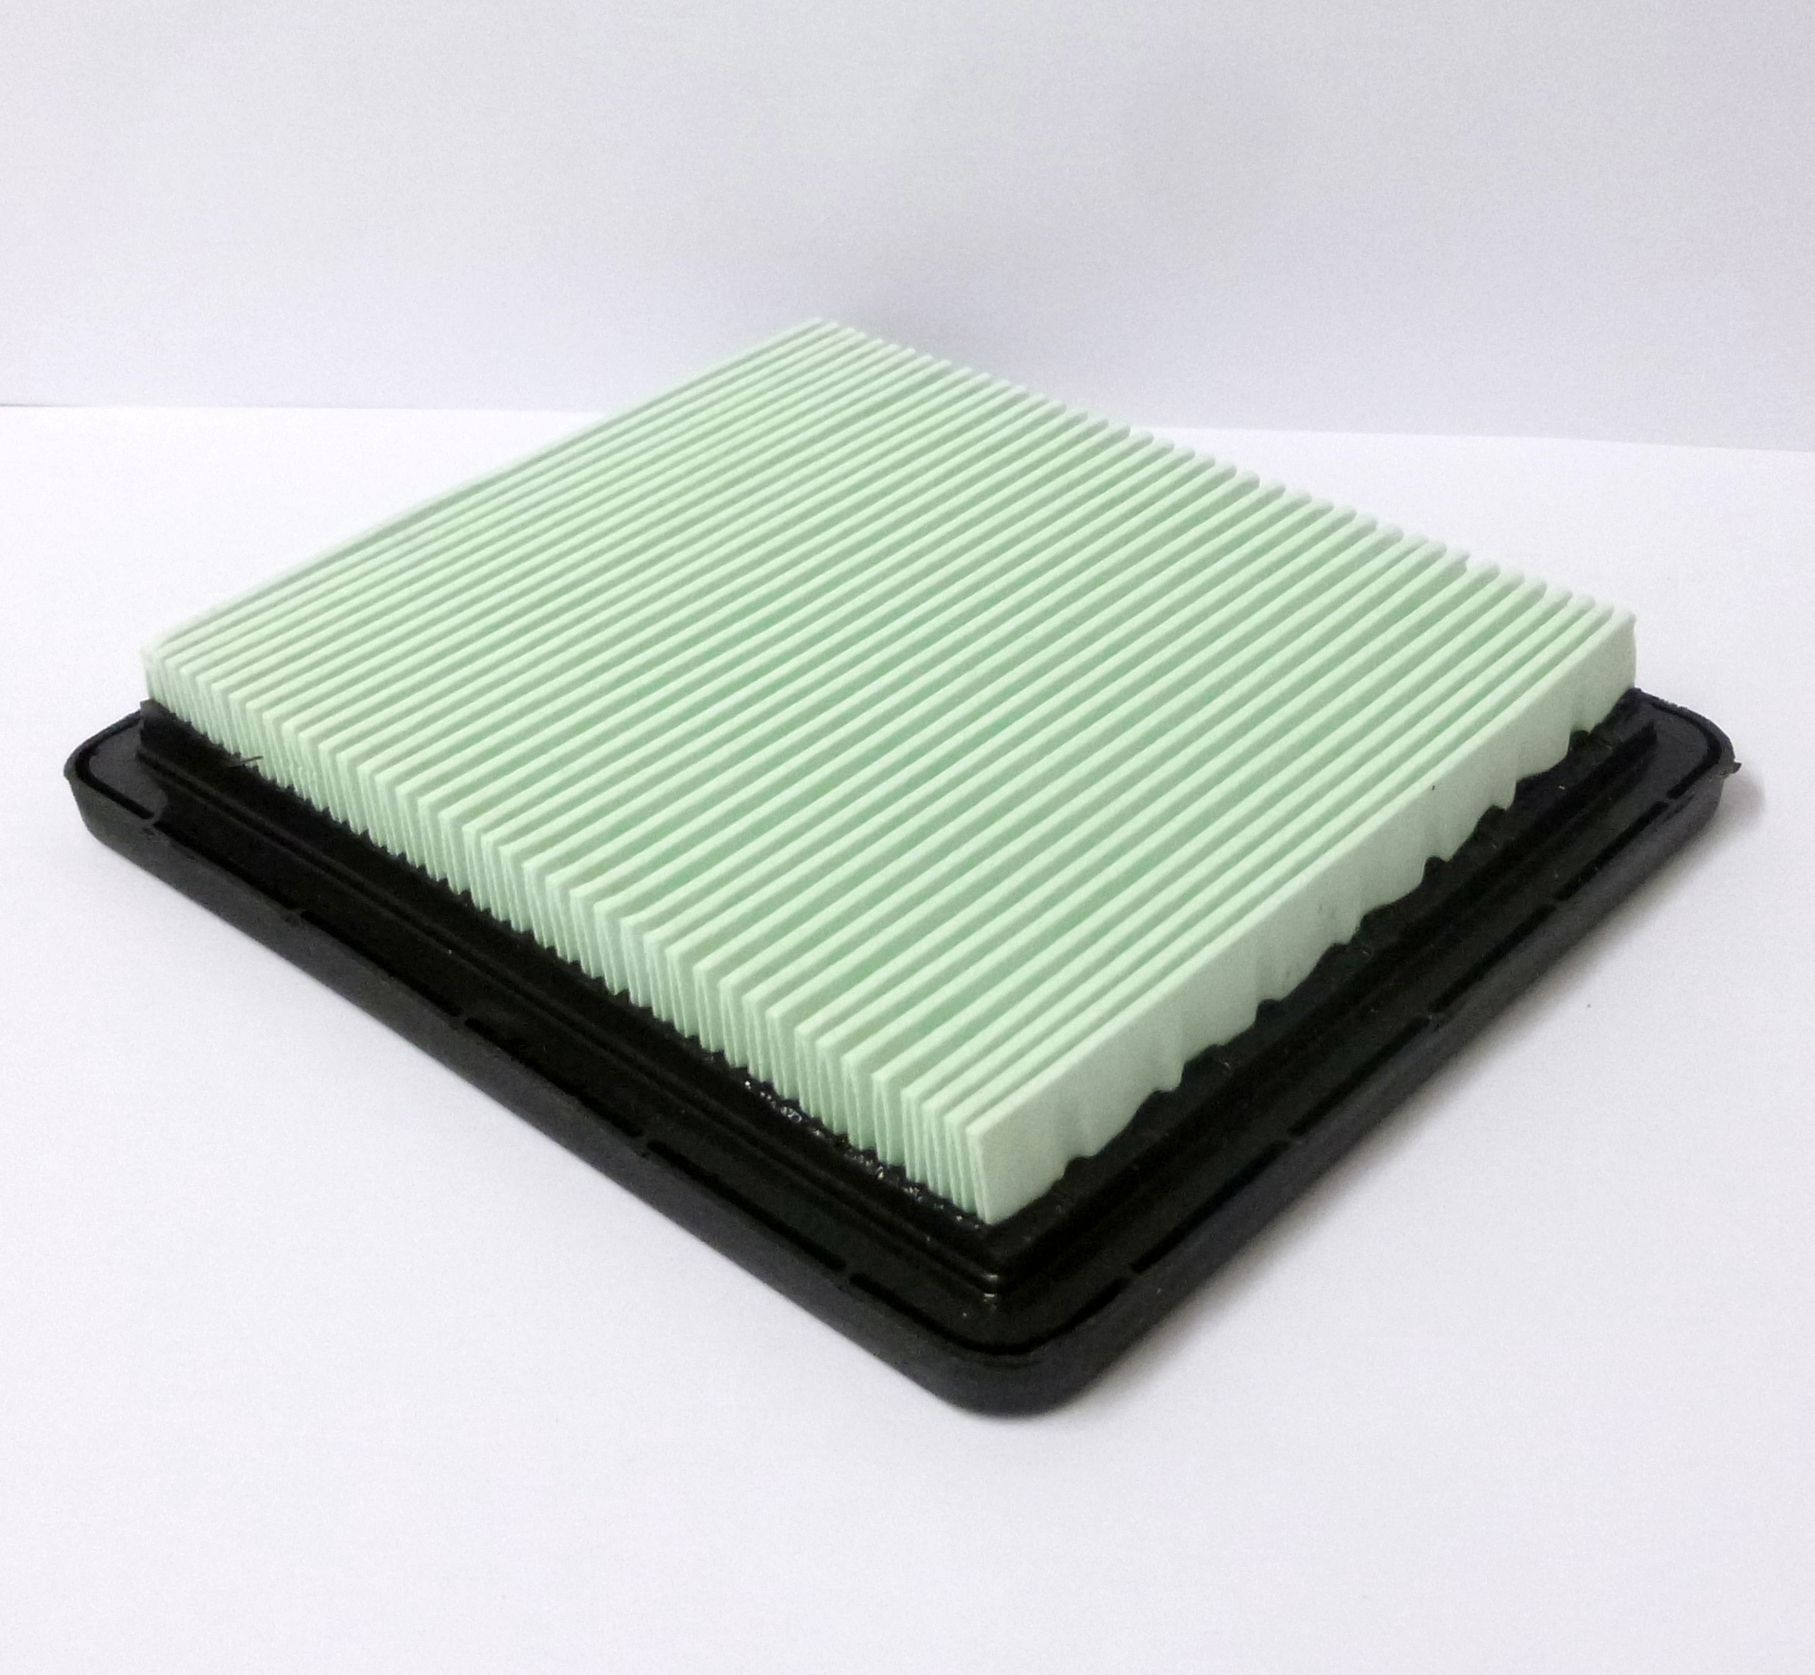 Lawn Mower Air Filter : Mountfield hp r sp lawn mower honda air filter